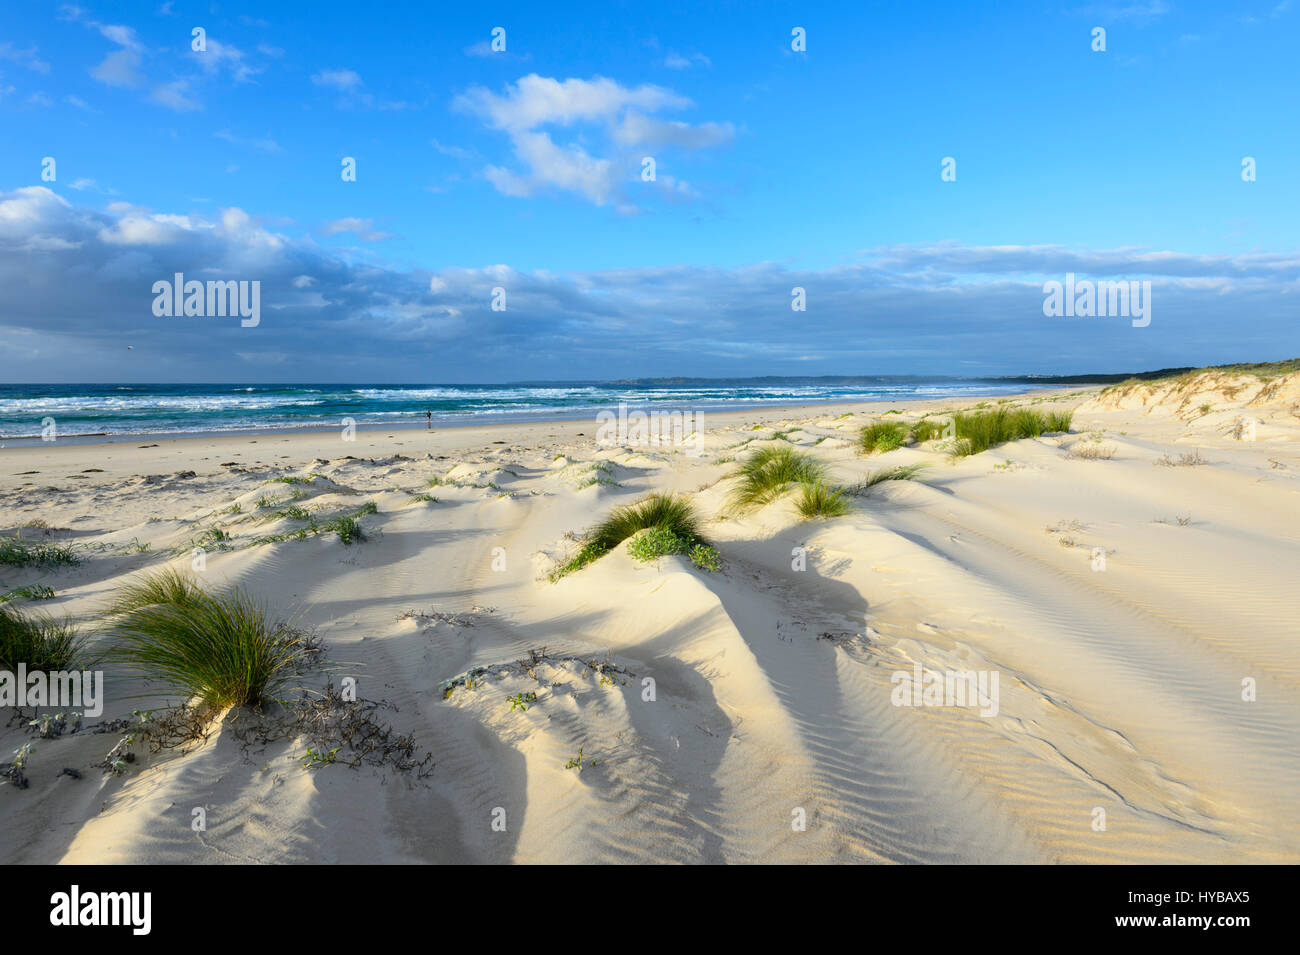 Picturesque sand dunes and grass tufts at Conjola Beach, Shoalhaven, South Coast, New South Wales, NSW, Australia Stock Photo